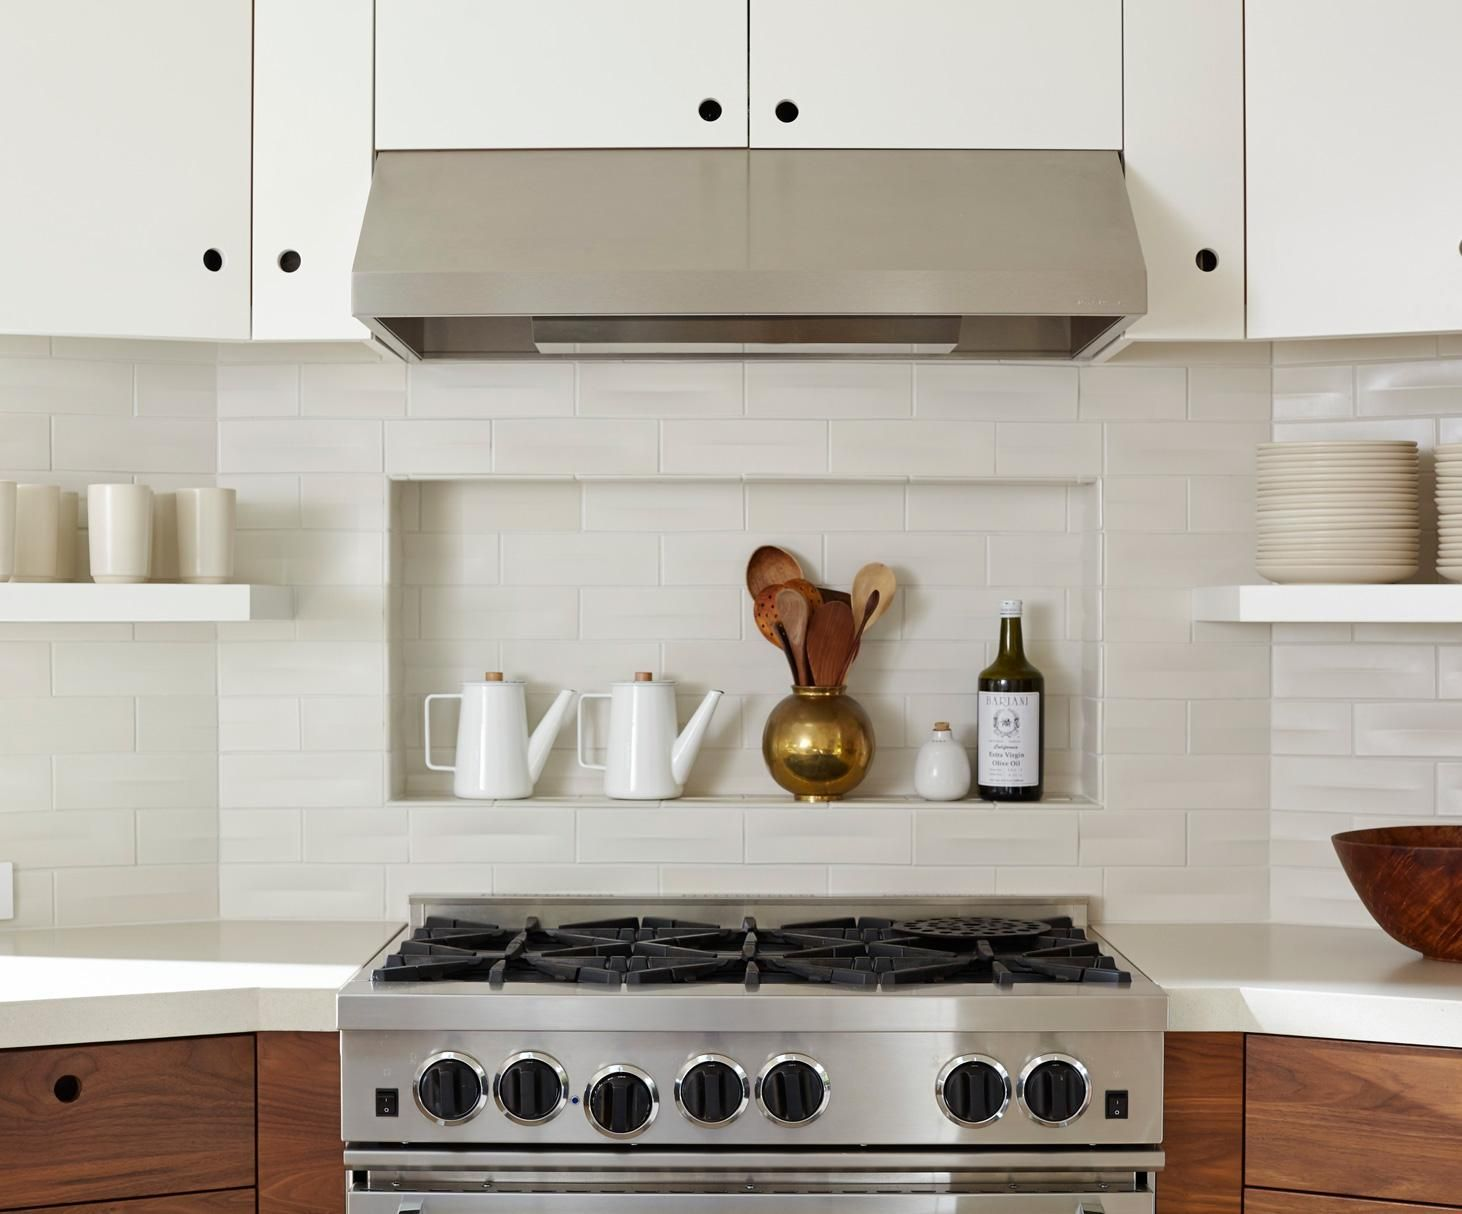 - LOVE THE CUTOUT OF THE BACKSPLASH In Above The Stove And The White